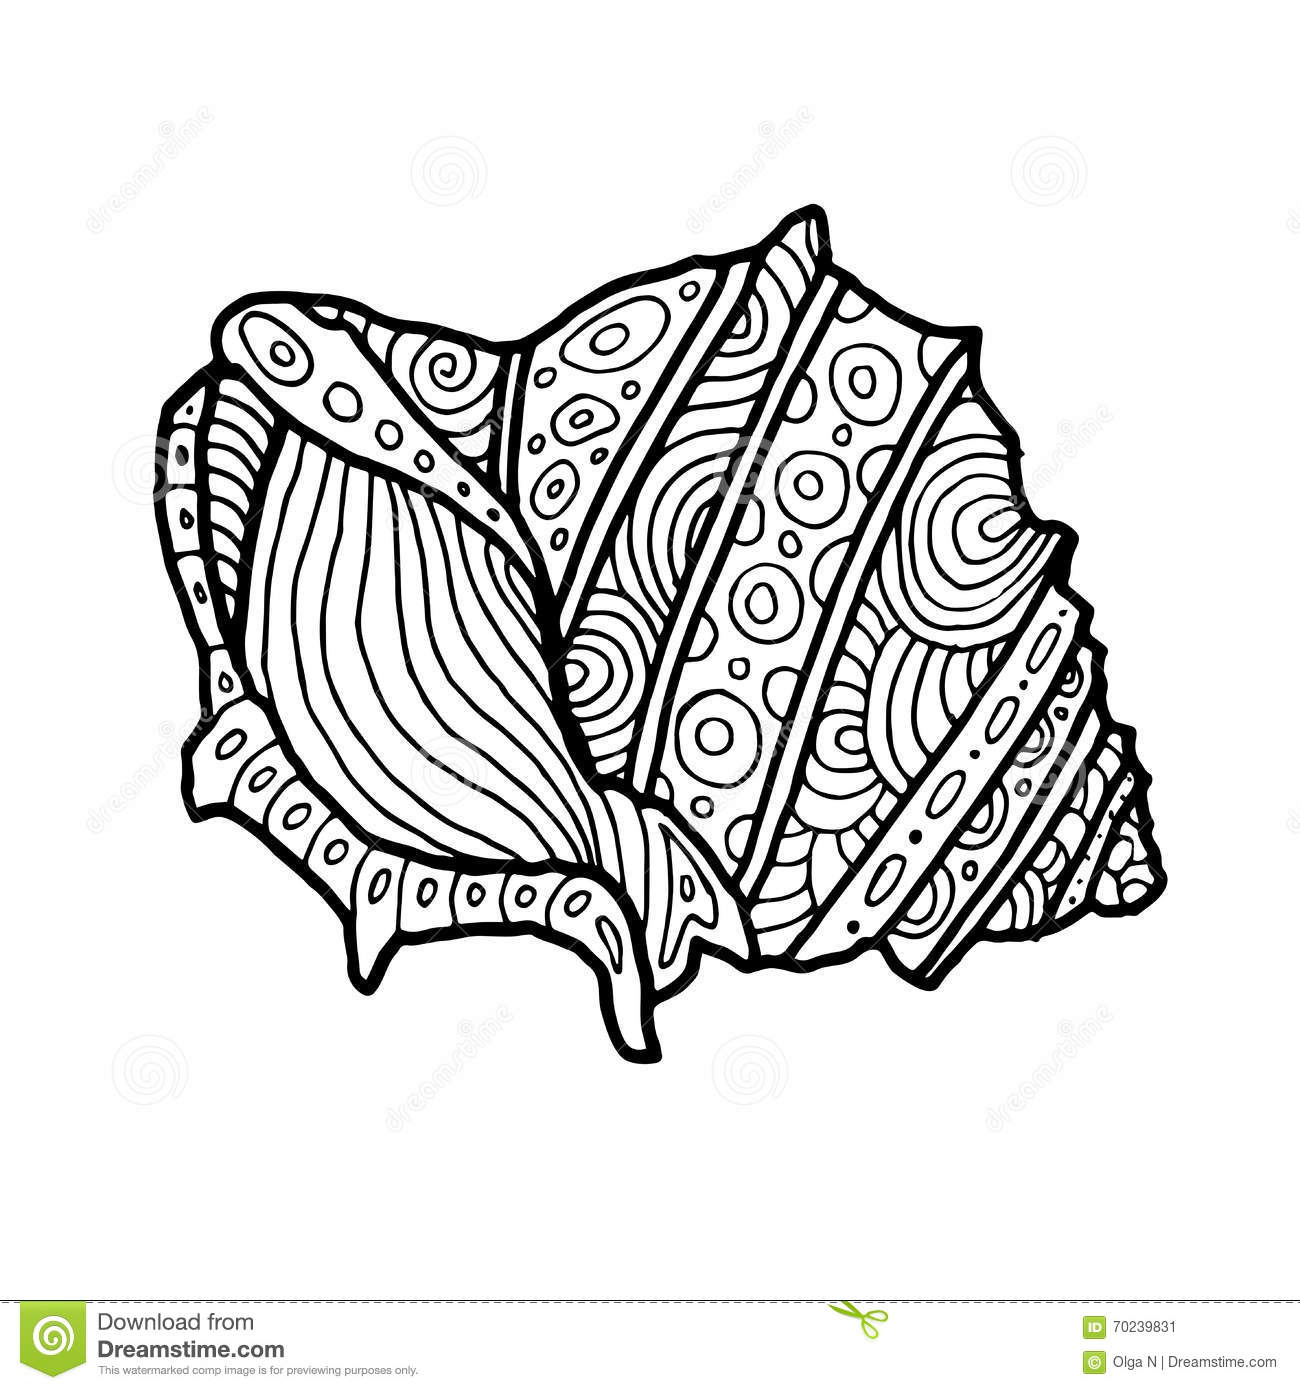 seashell coloring pages printable - decorative zentangle sea shell illustration outline